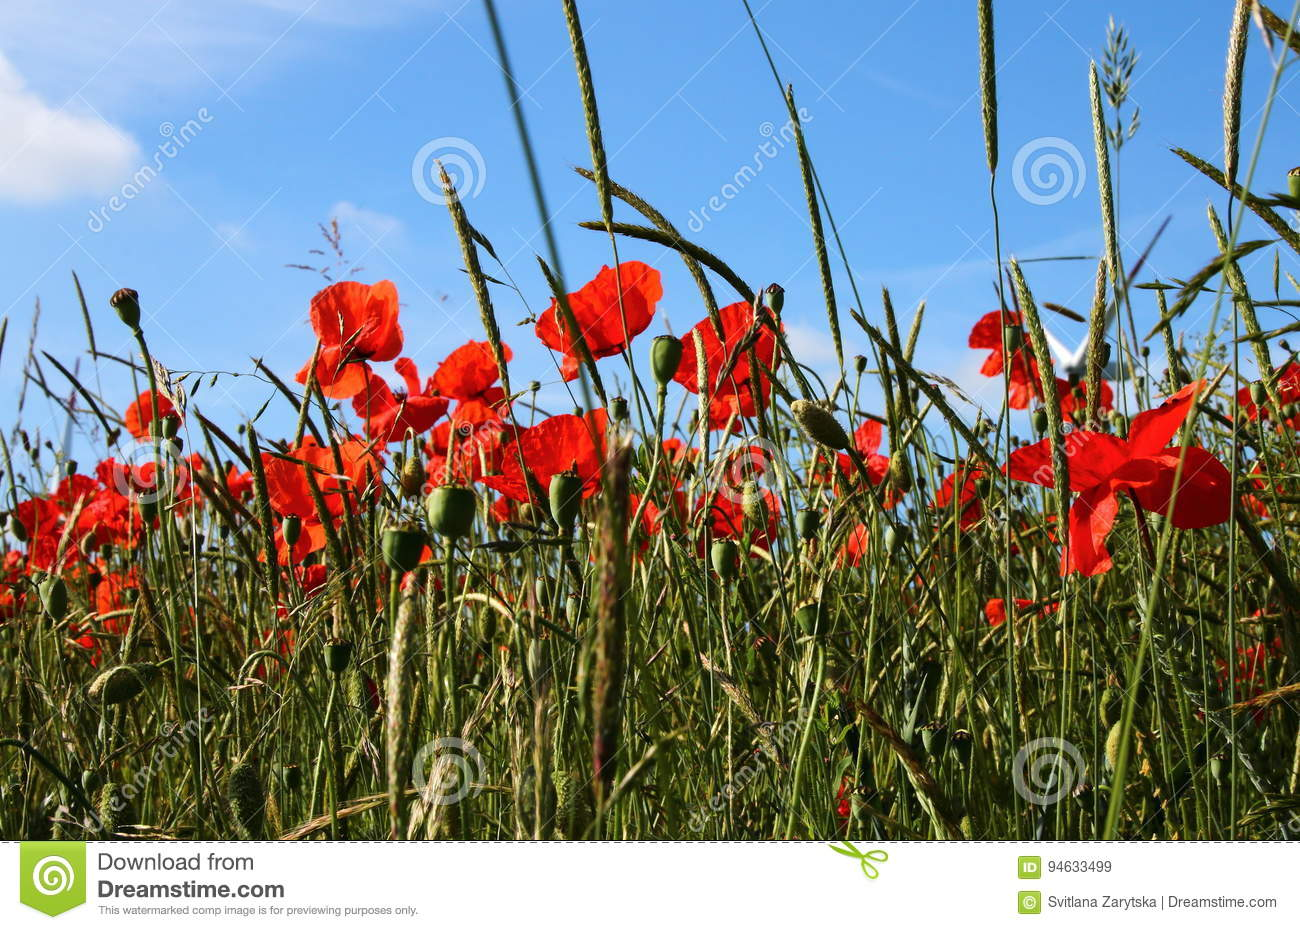 Plants And Flowers Stock Image Image Of Poppies Daisies 94633499